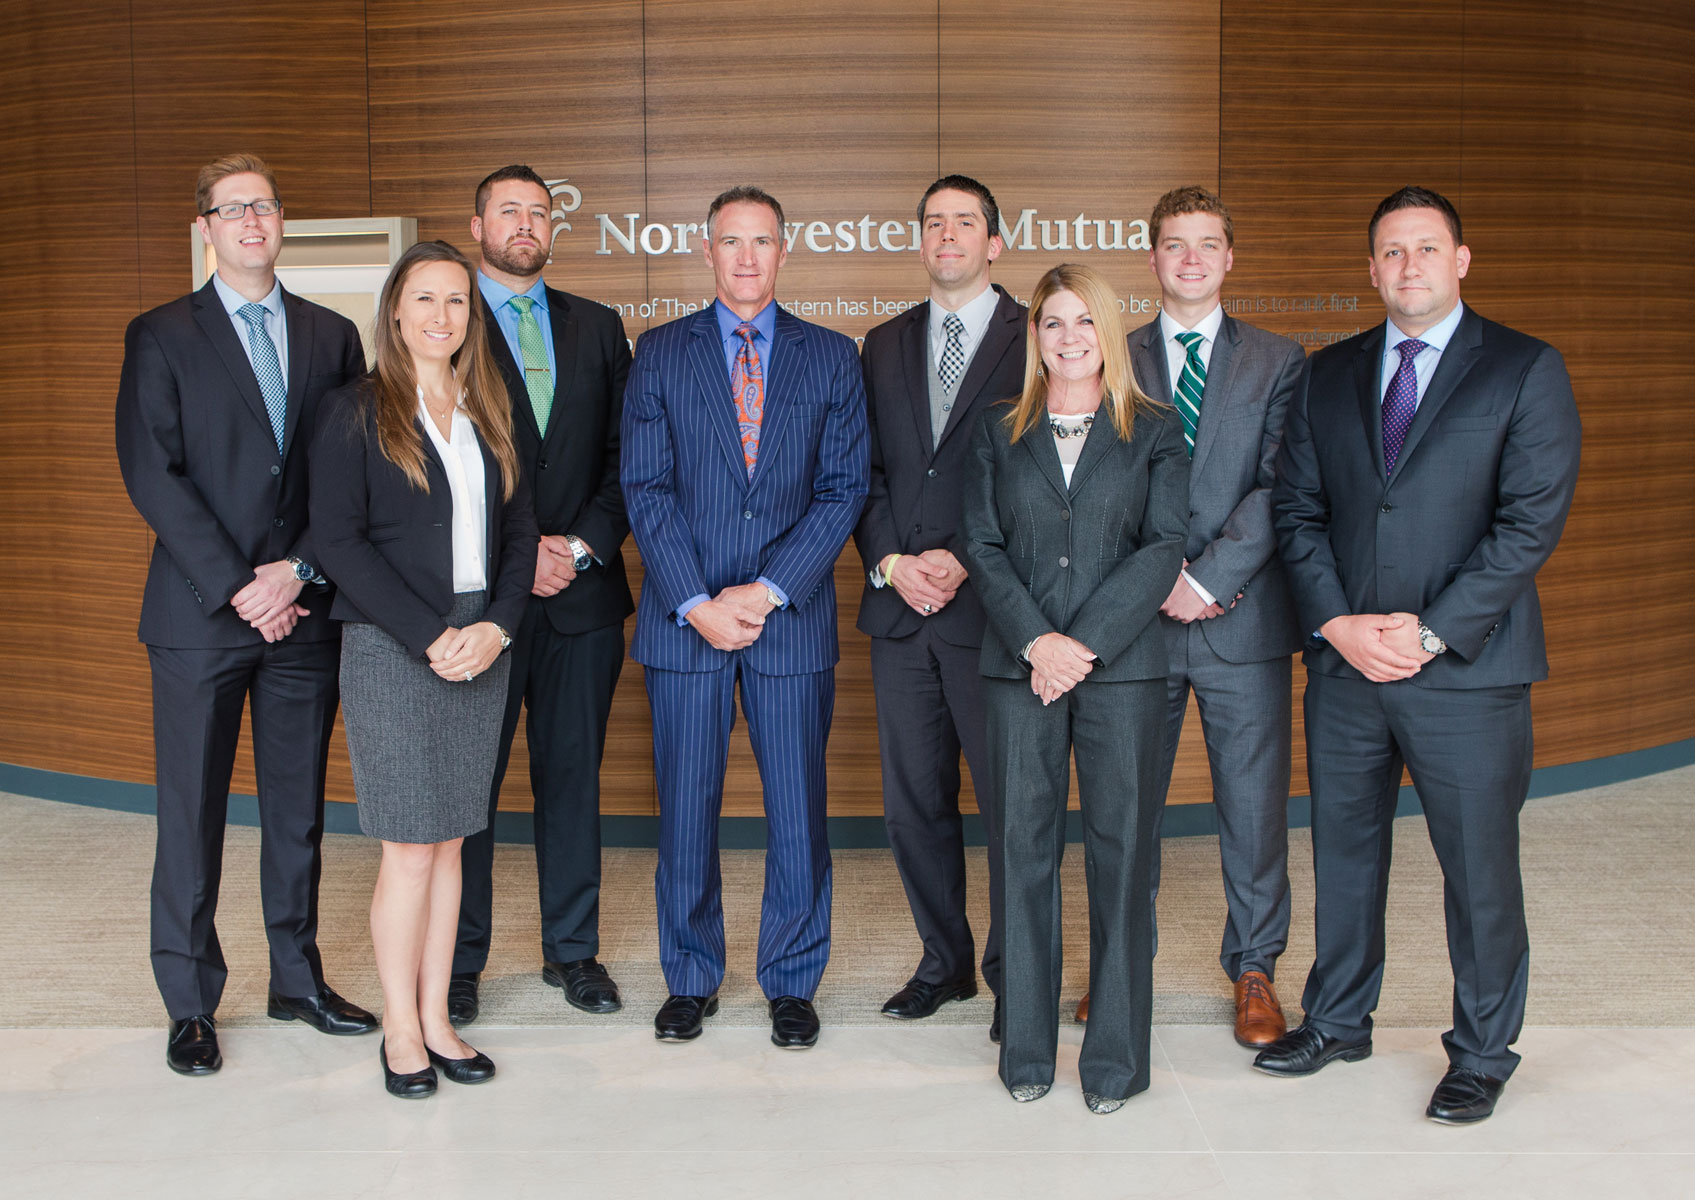 Prescient Financial Solutions team photo